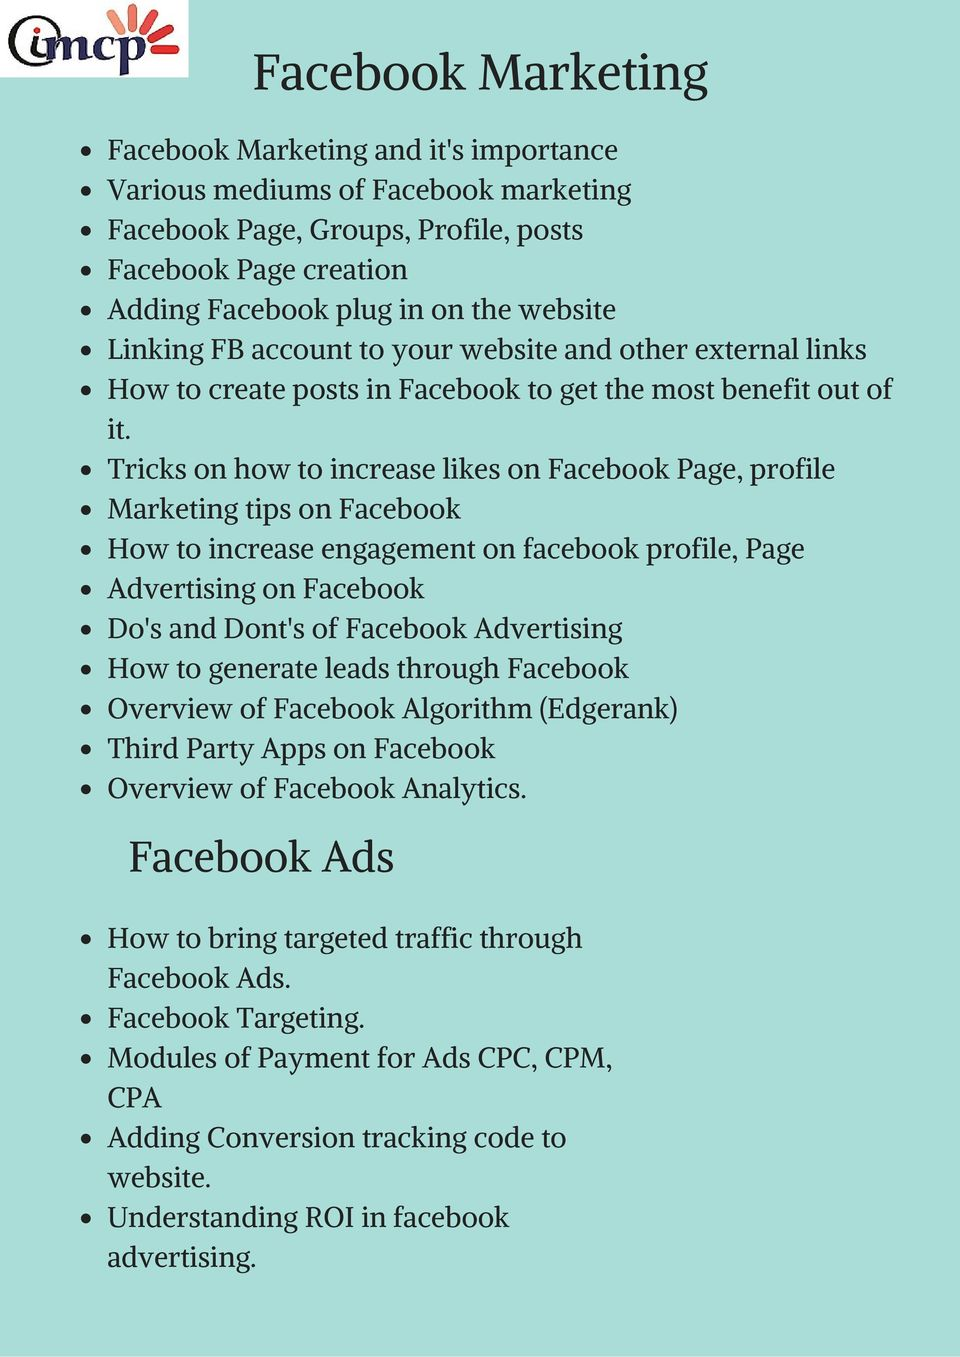 Tricks on how to increase likes on Facebook Page, profile Marketing tips on Facebook How to increase engagement on facebook profile, Page Advertising on Facebook Do's and Dont's of Facebook